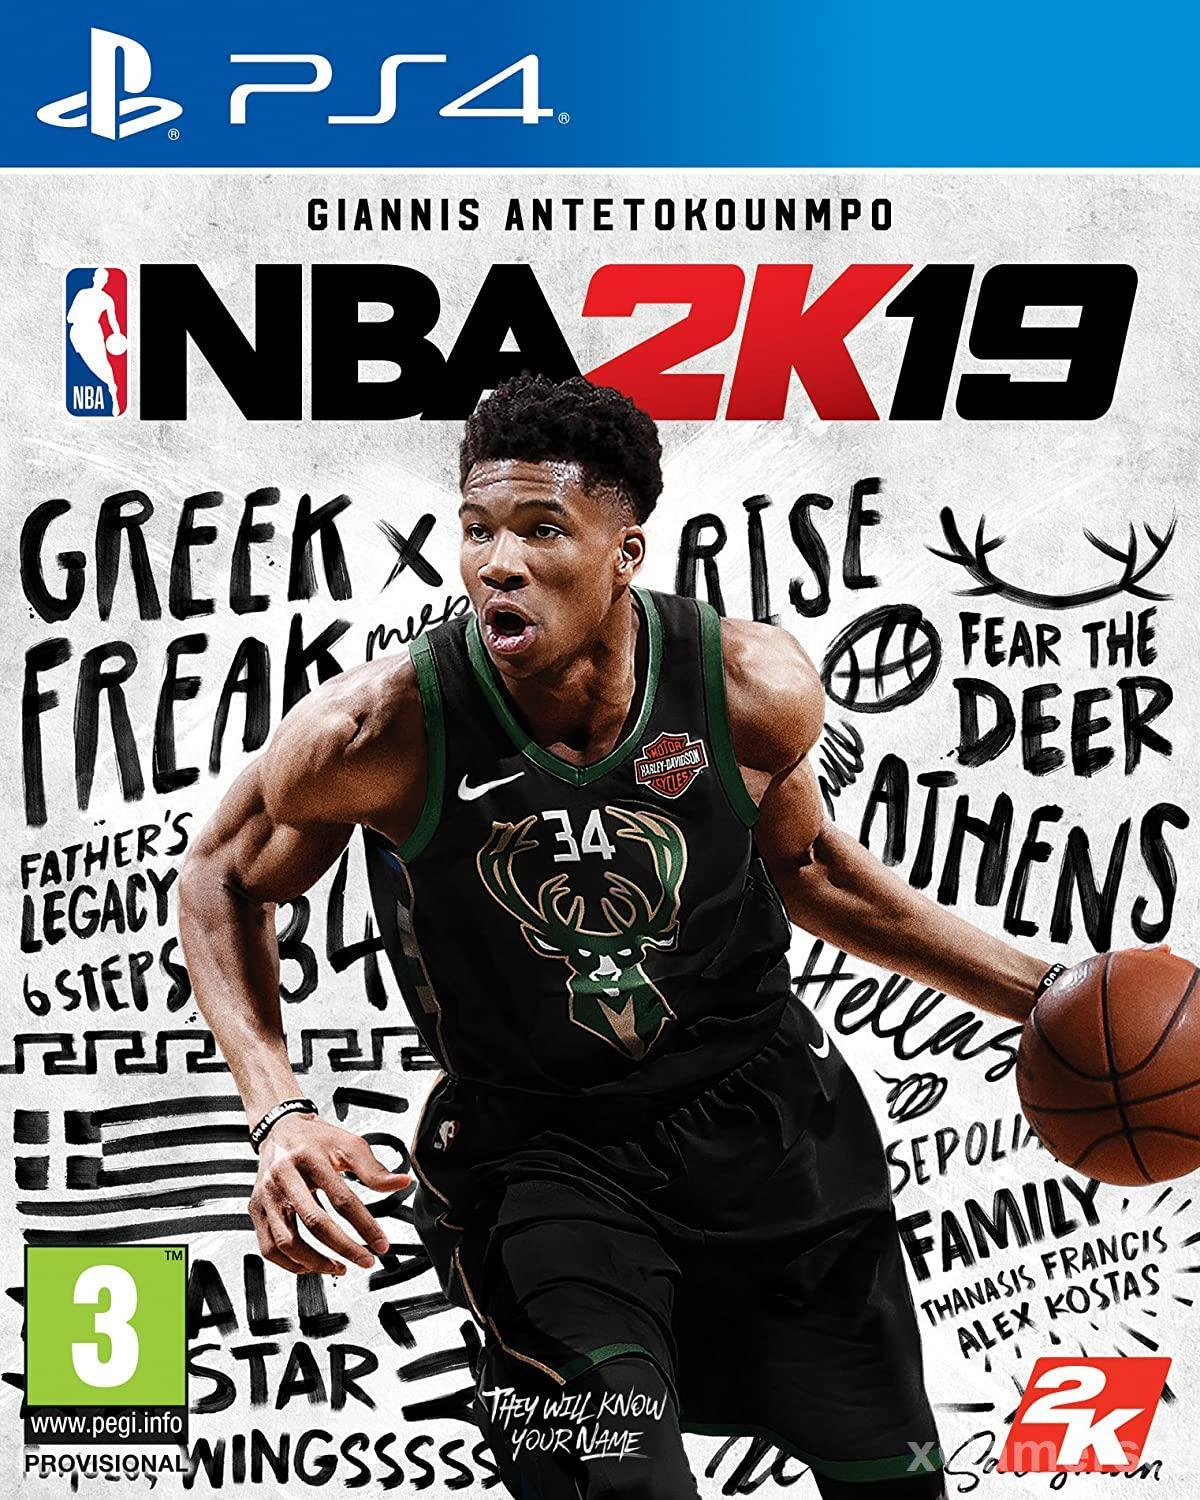 NBA 2K19 - a game with hyper-realistic graphics and motion mechanics